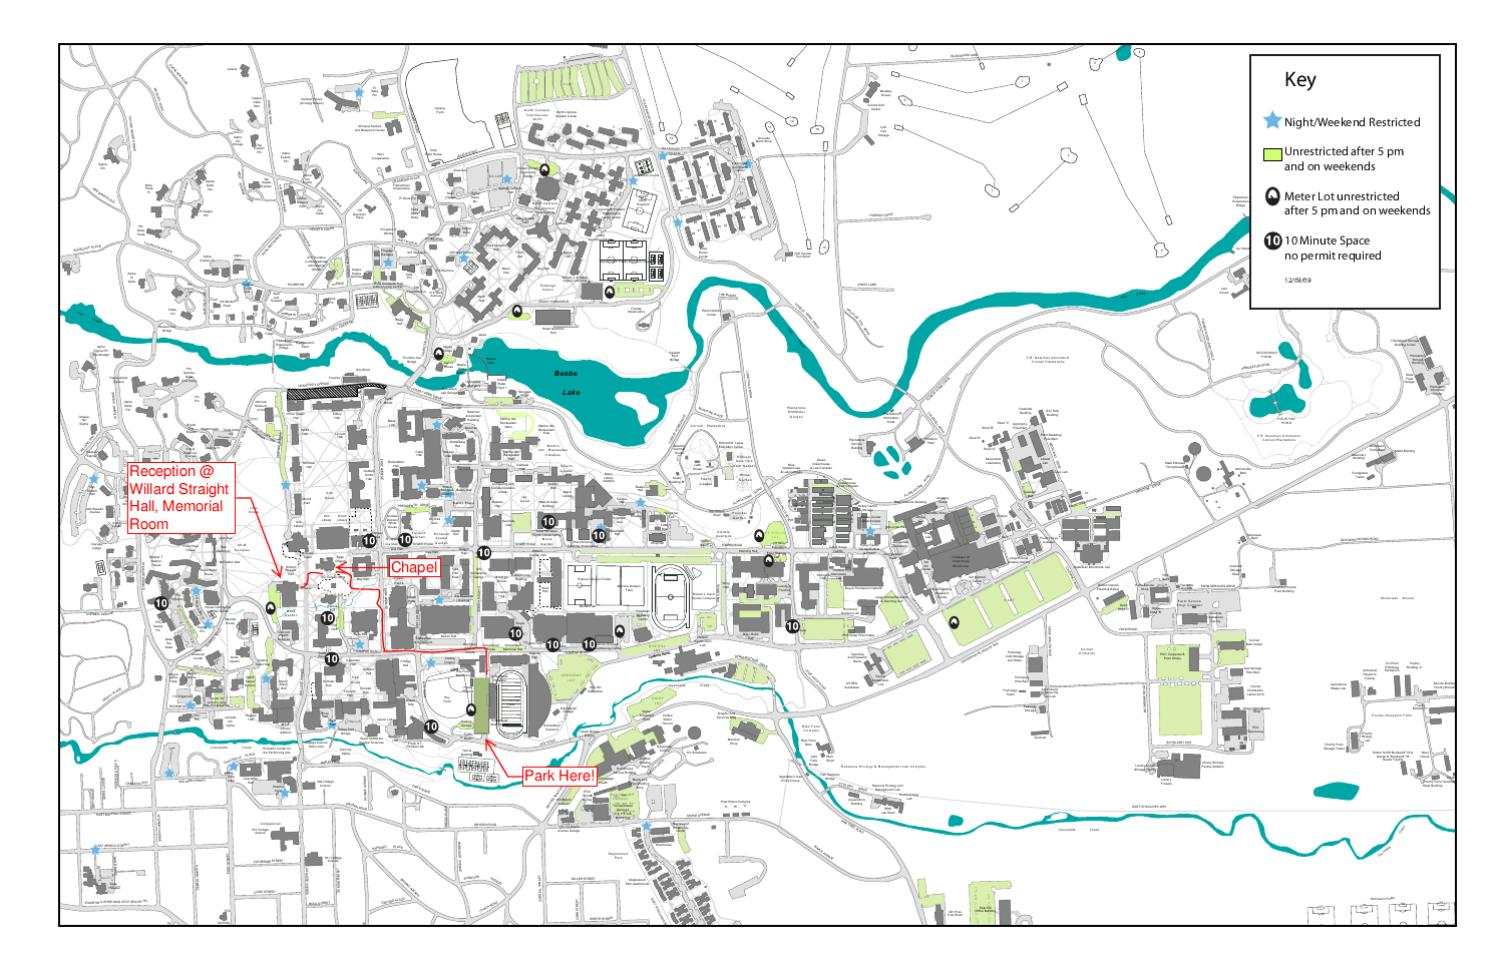 Cornell Parking Map by Steven Rodriguez - issuu